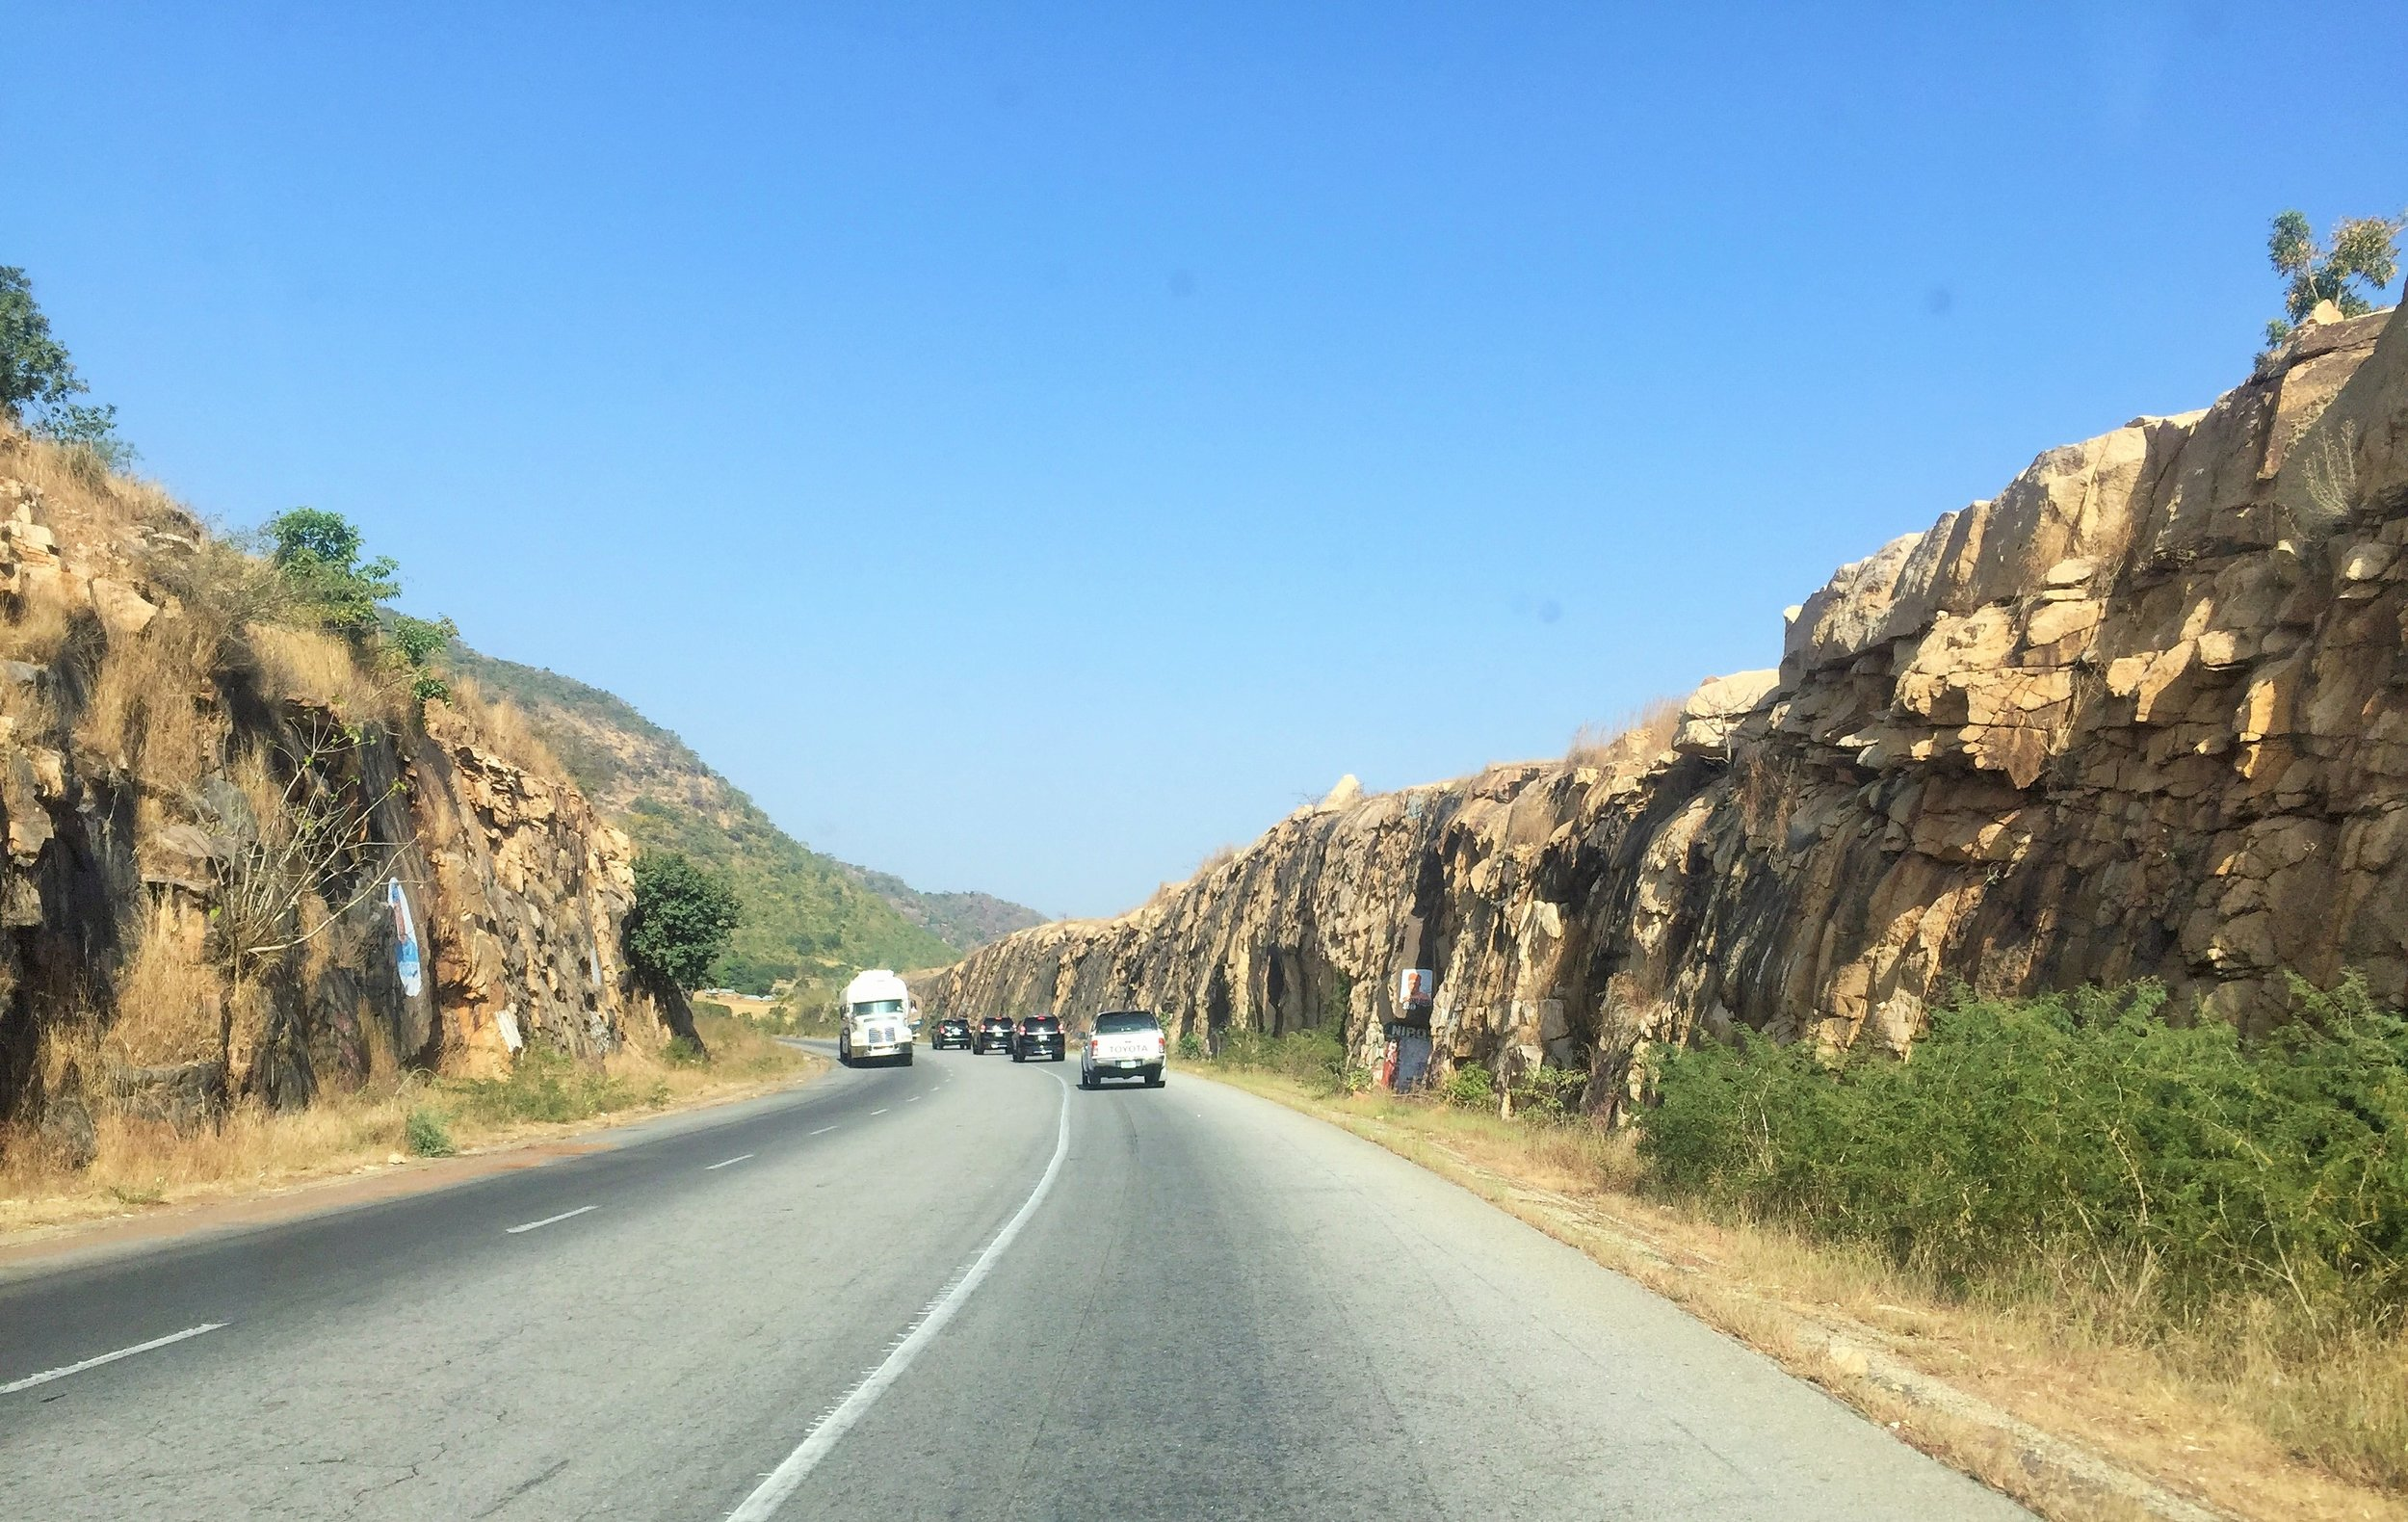 Road from Jos to Bauchi